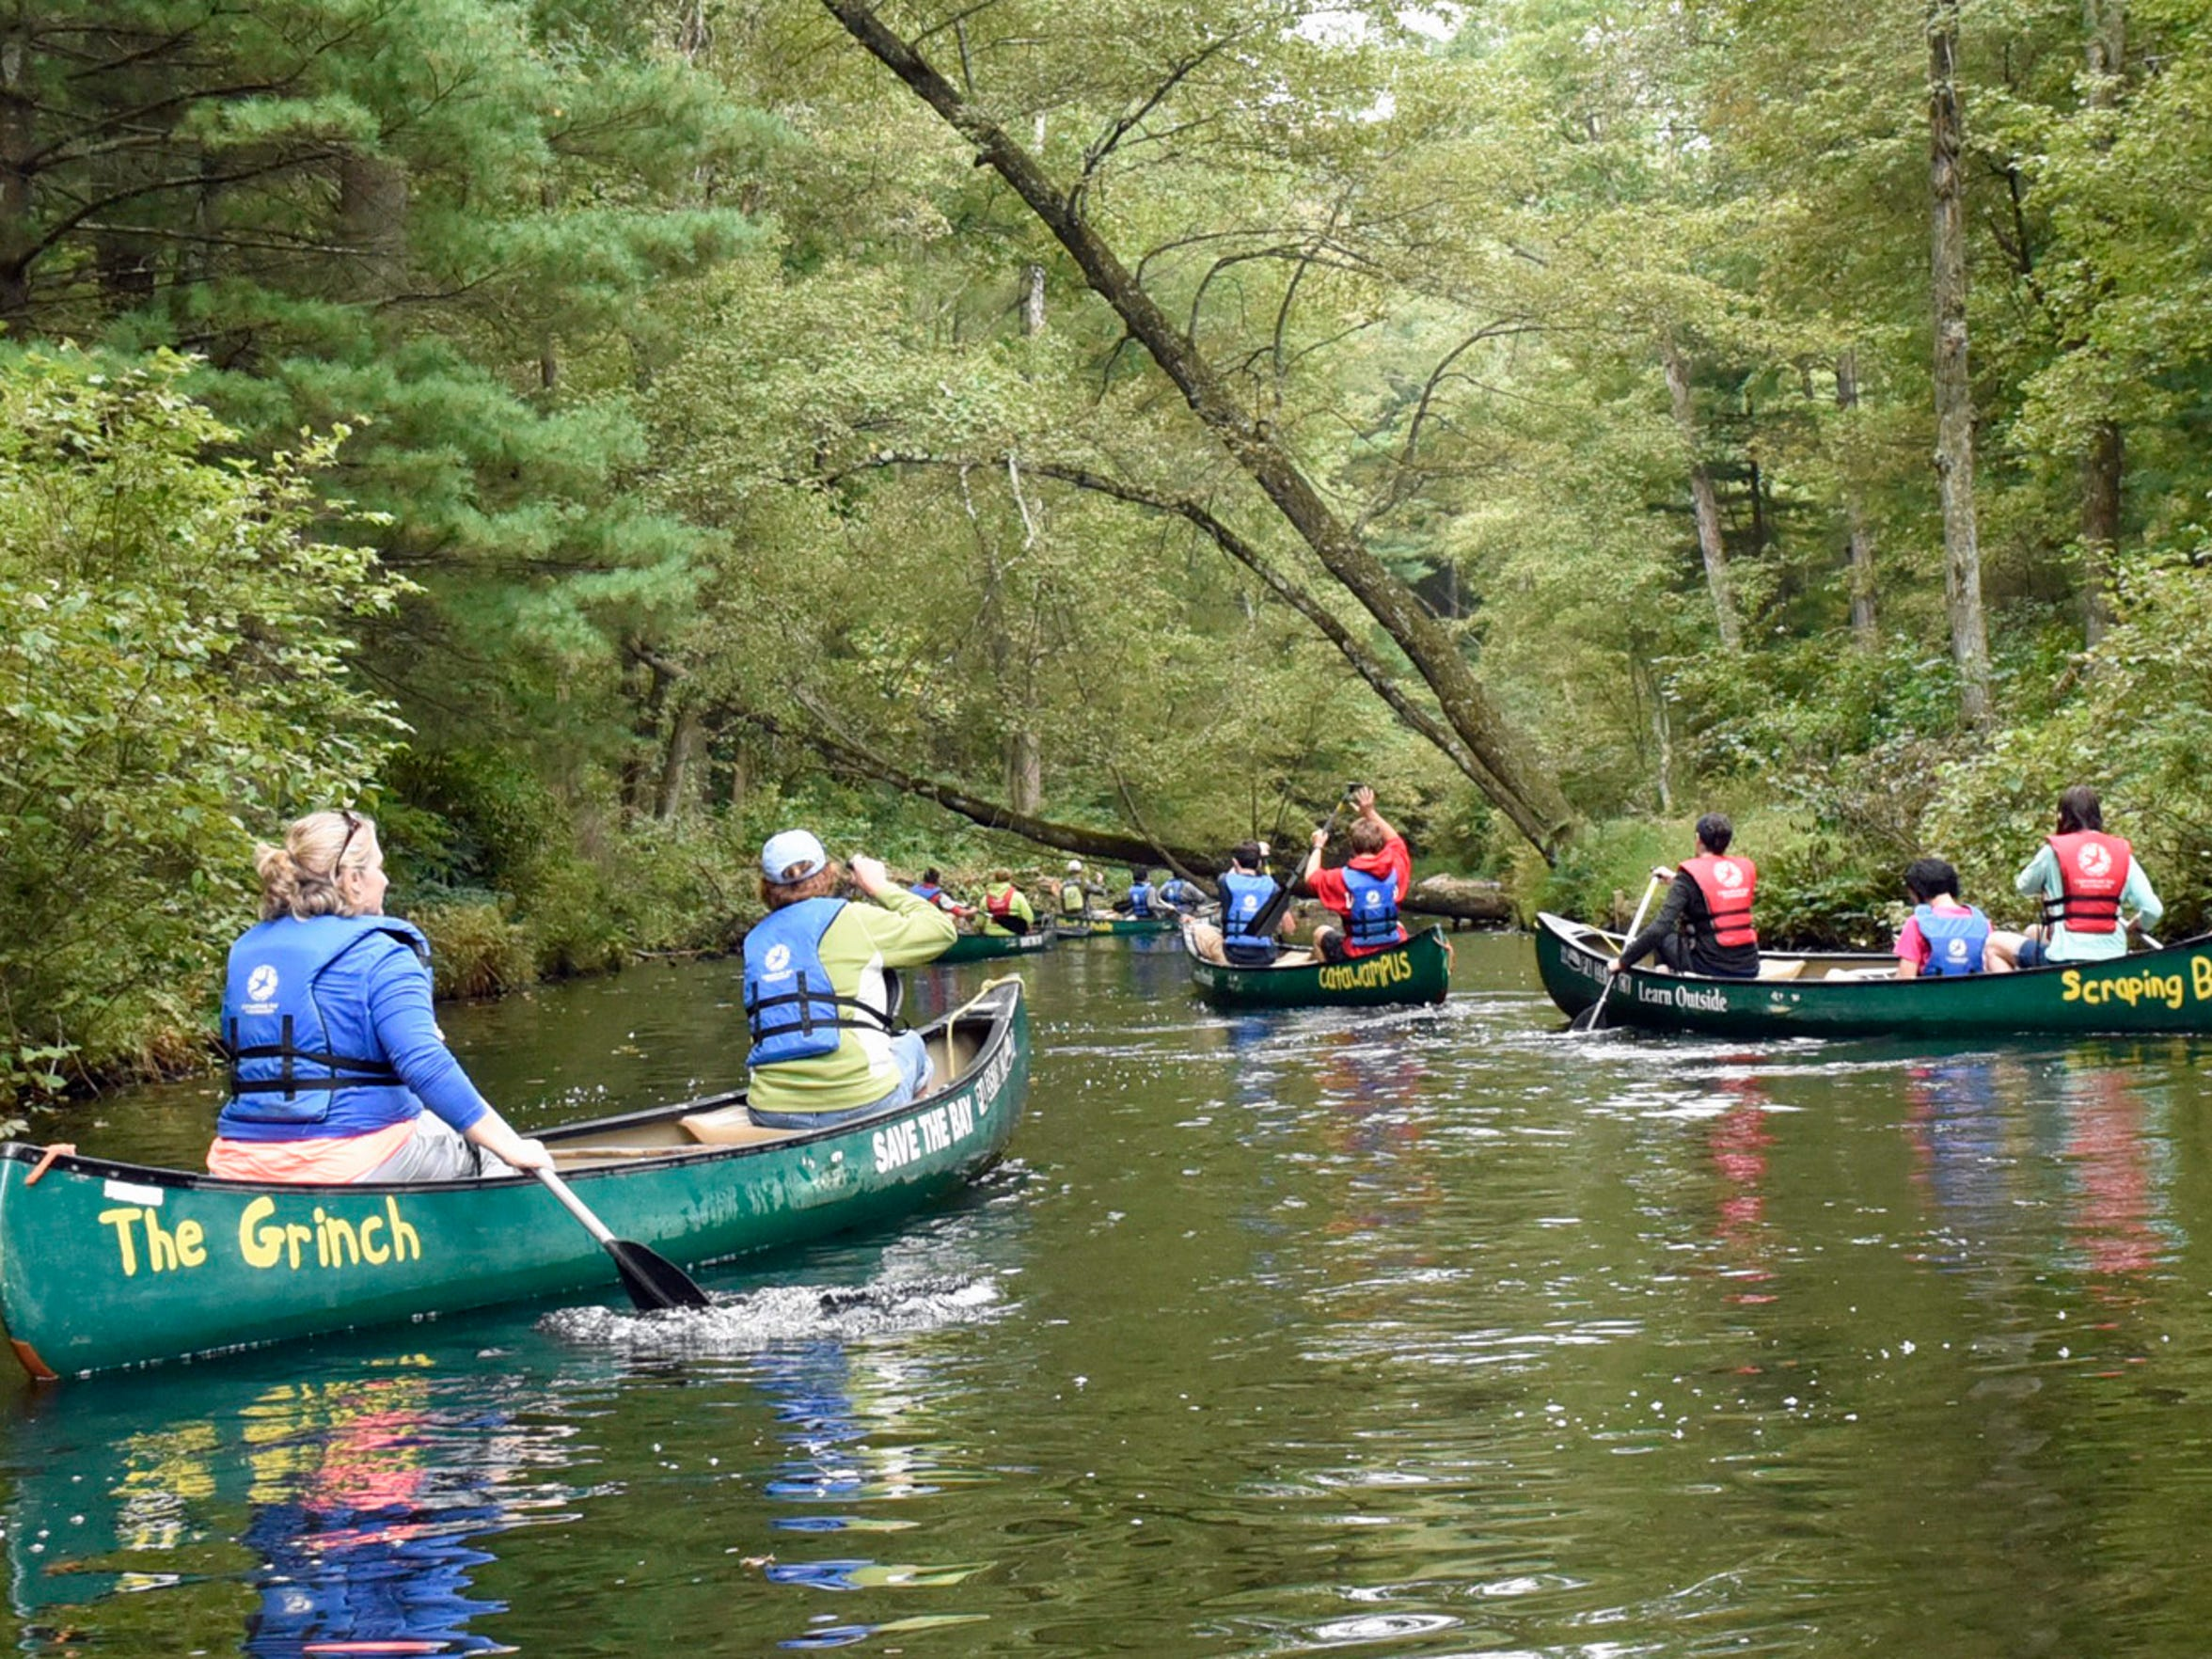 Students from Chambersburg Magnet School paddle in canoes on Monday, Sept. 26, 2016 along Laurel lake. A group of AP students conducted a watershed exploration with members of Chesapeake Bay Foundation during the Susquehanna Watershed Education Program (SWEP).